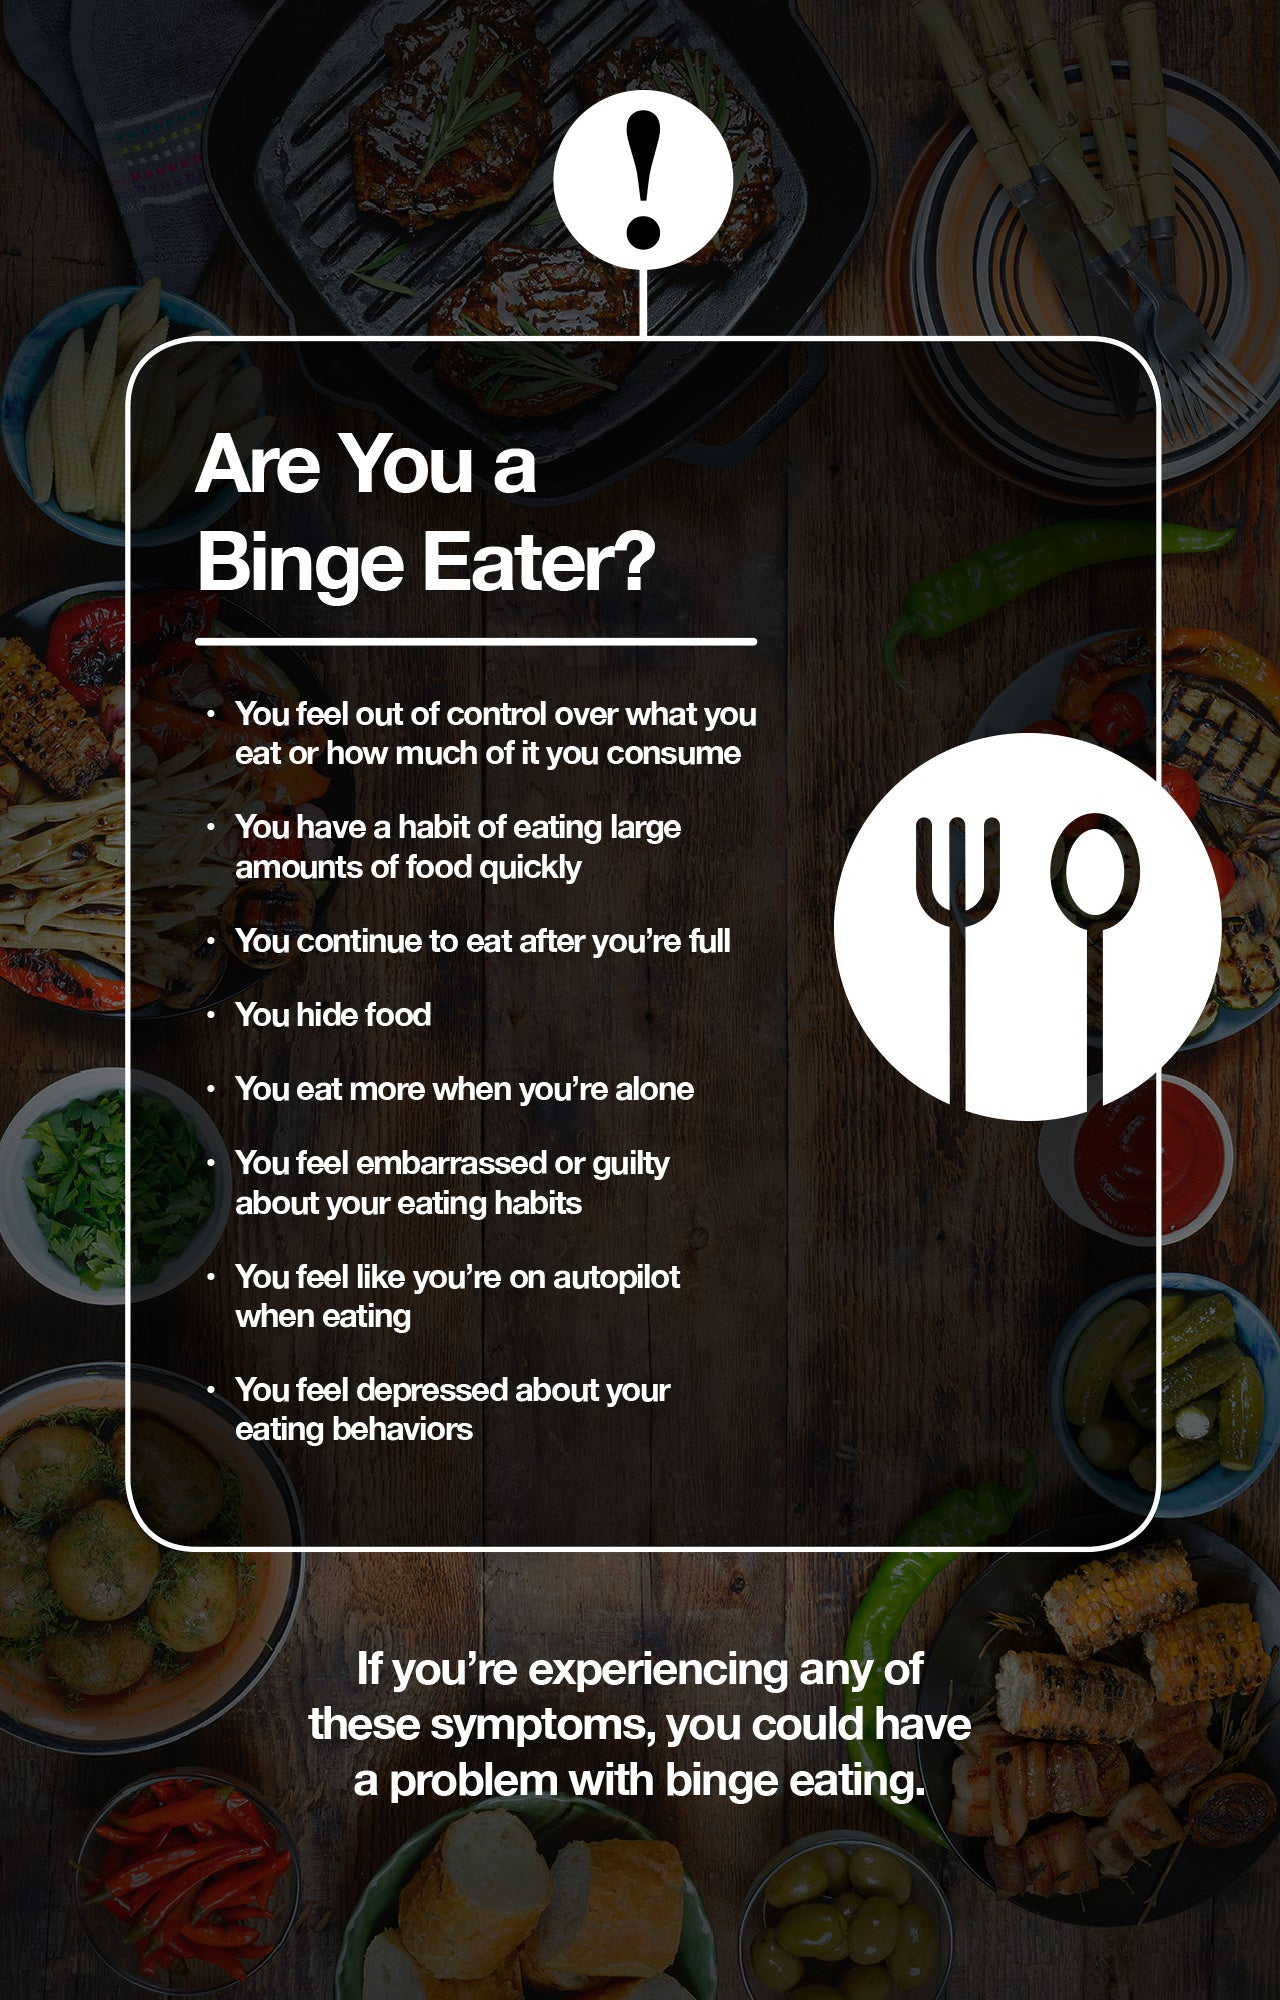 How to tell if you are a binge eater